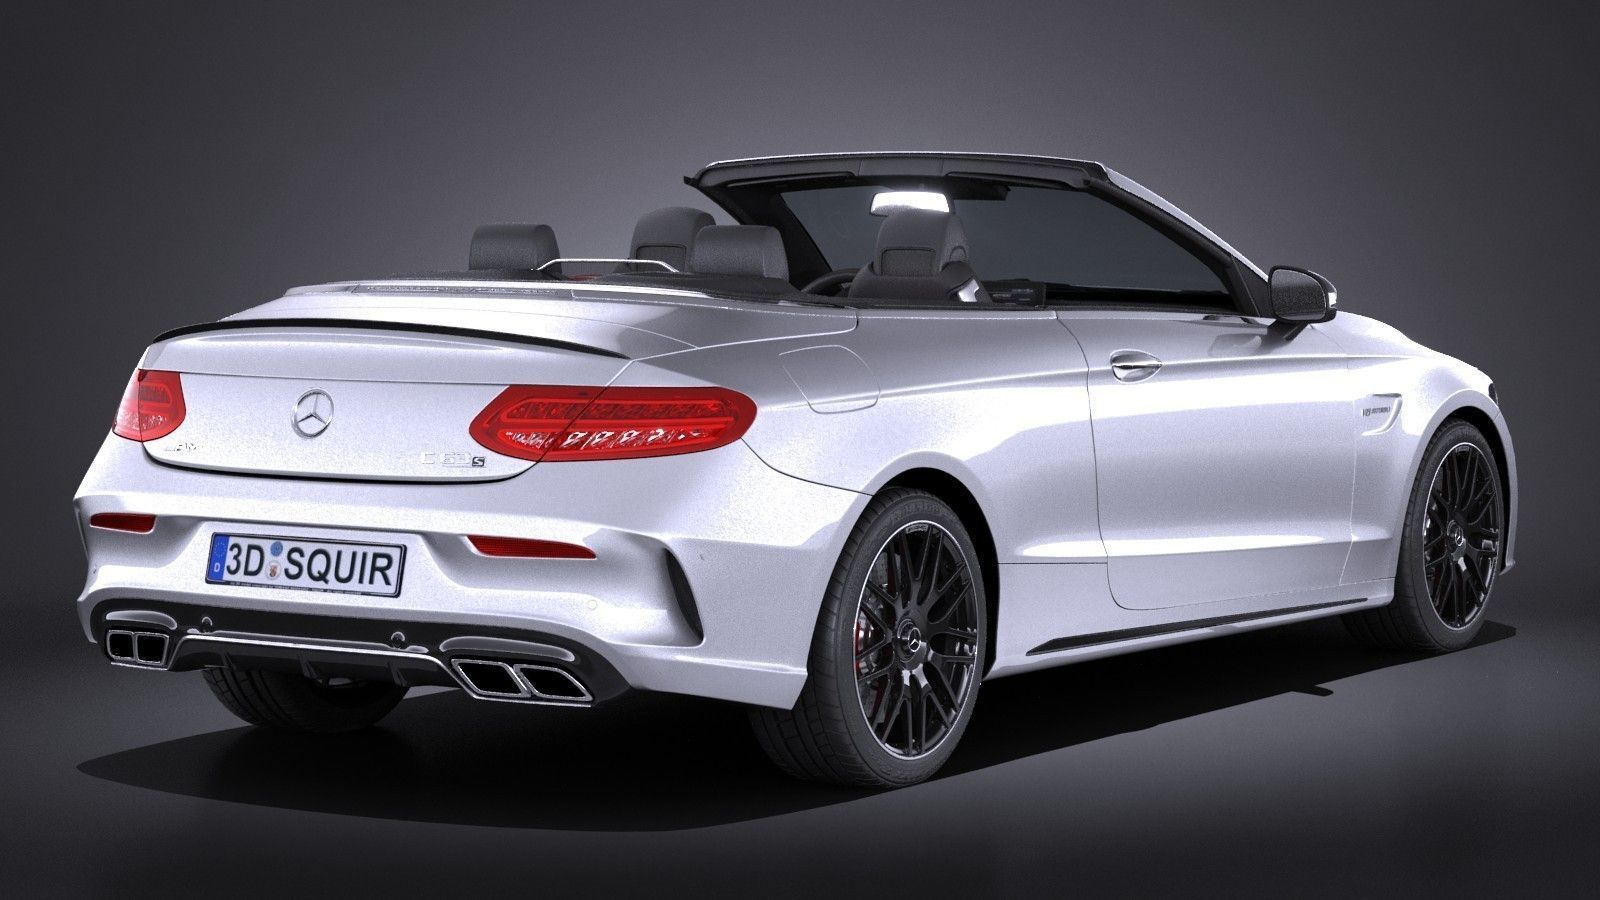 mercedes c63 amg cabrio 2017 3d model max obj 3ds fbx. Black Bedroom Furniture Sets. Home Design Ideas